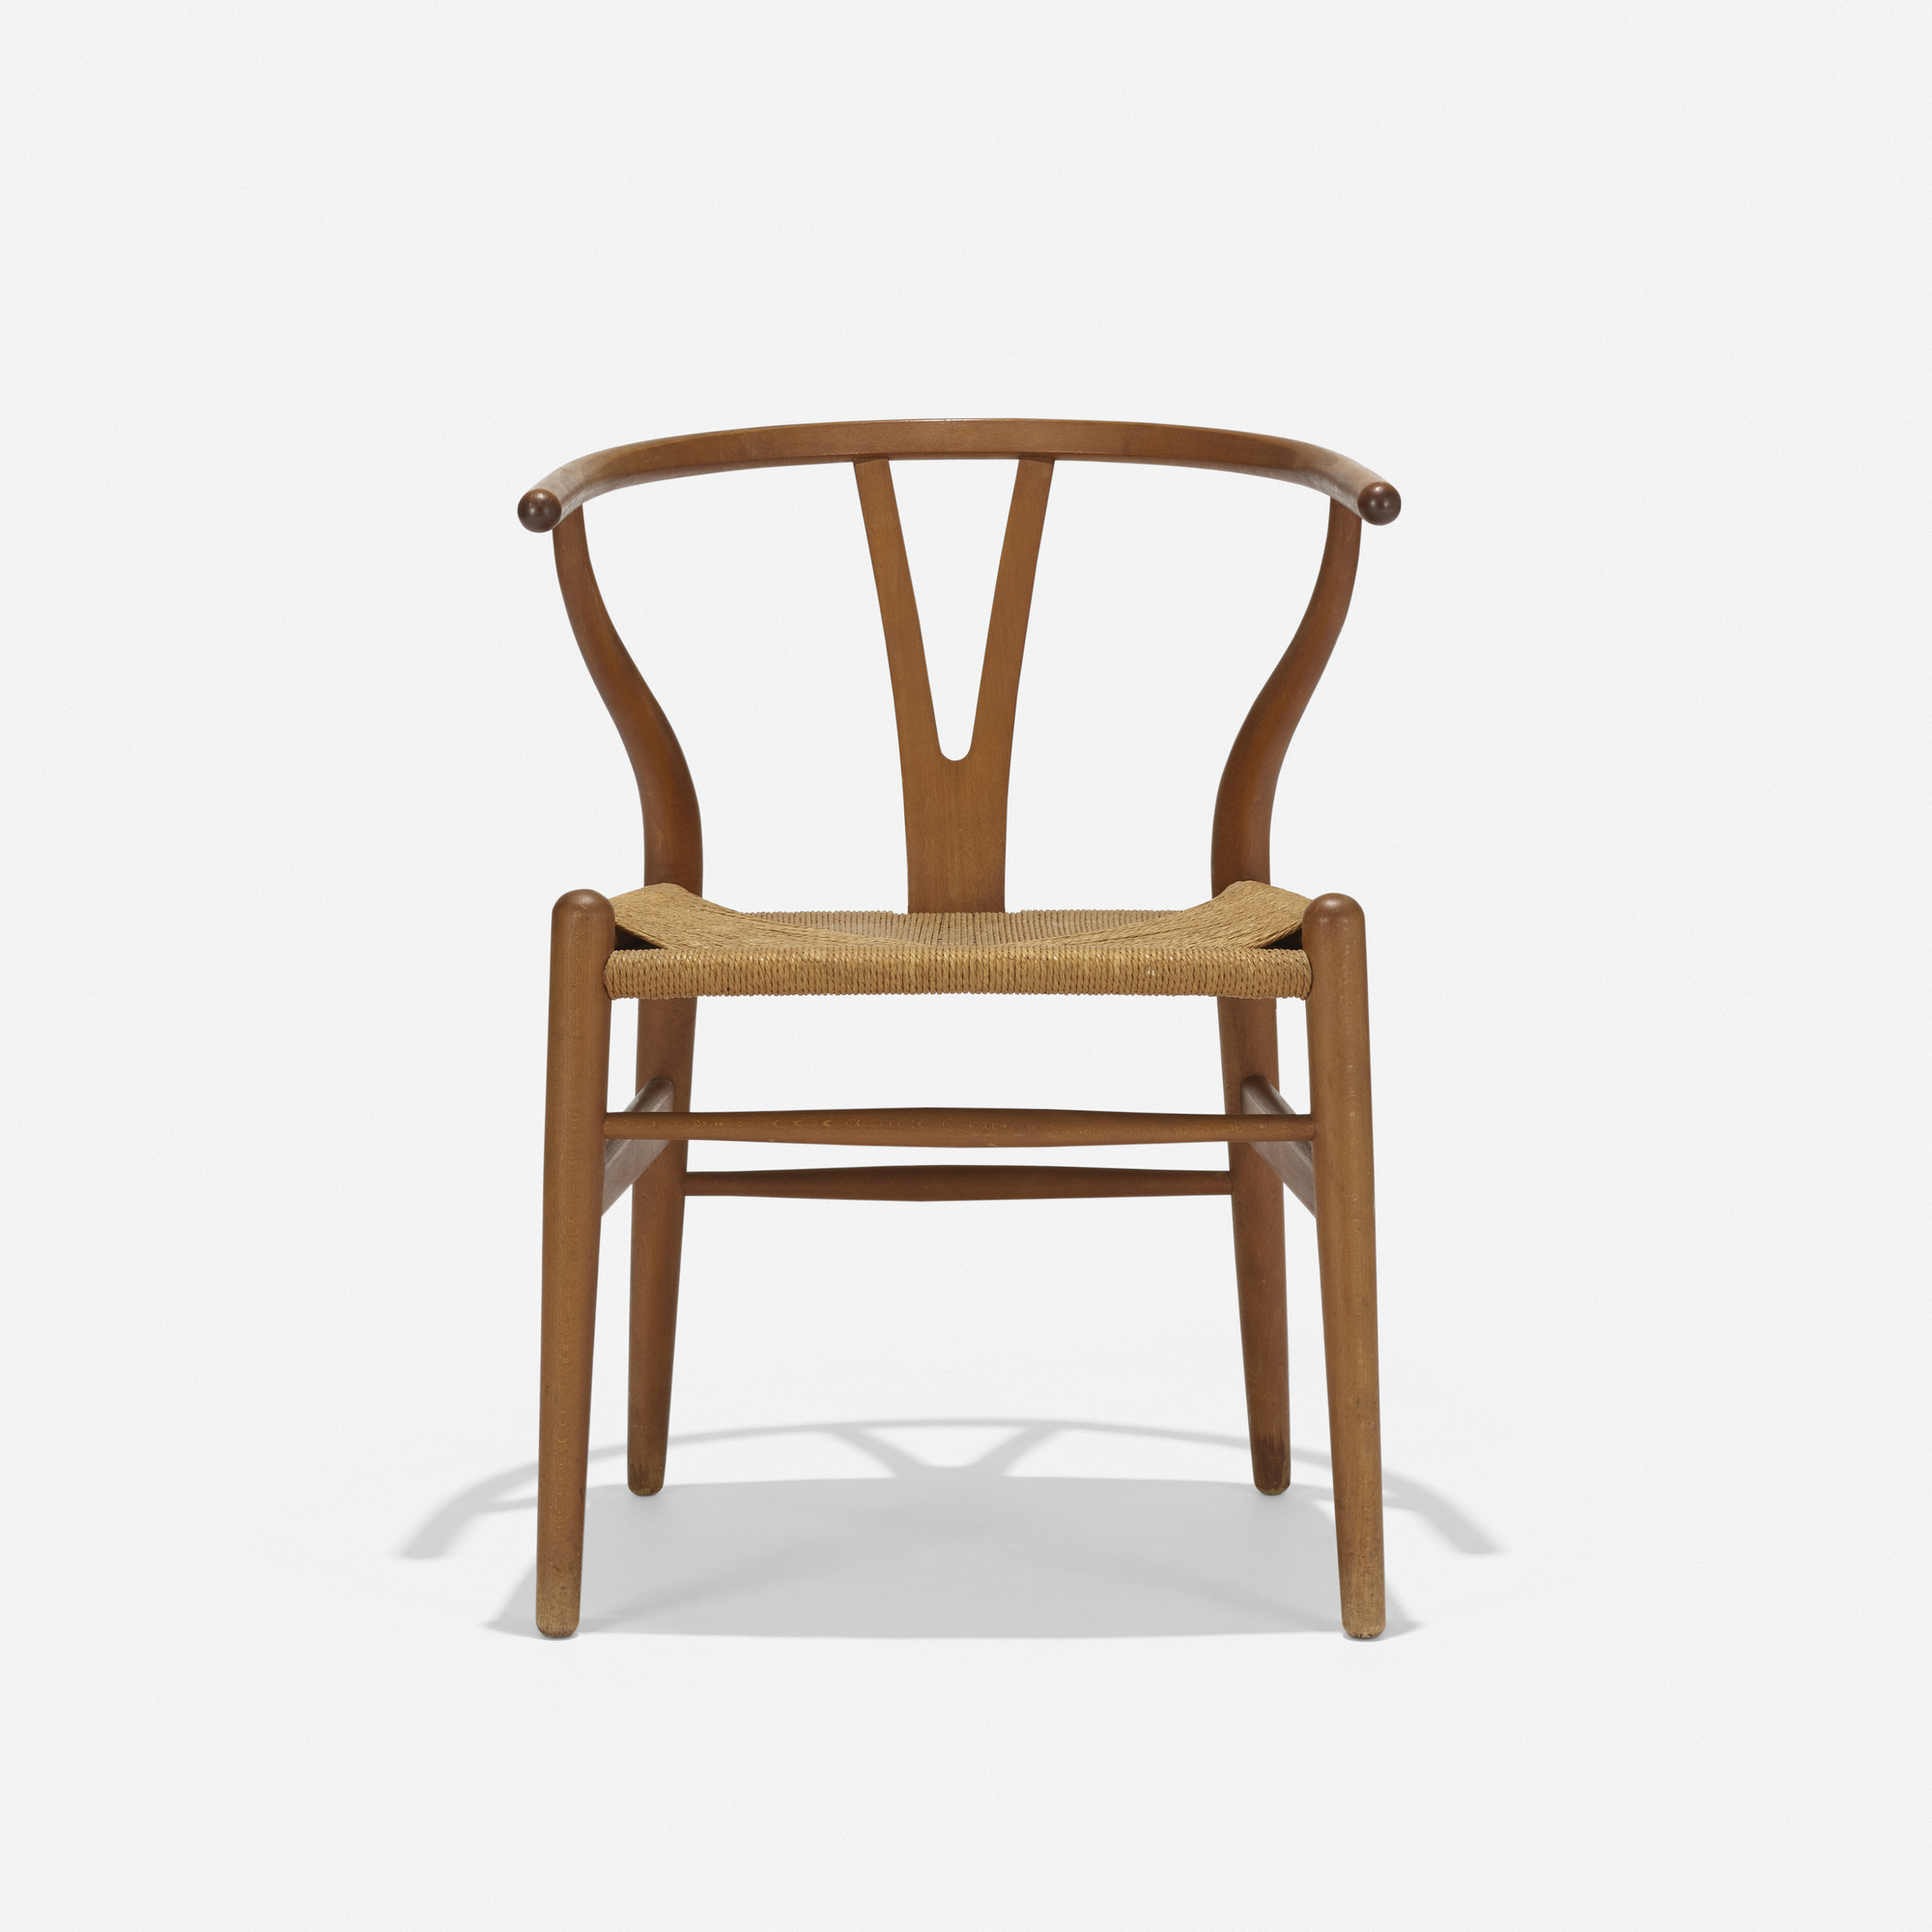 407: Hans J. Wegner / Wishbone Chair, model CH24 (1 of 3)